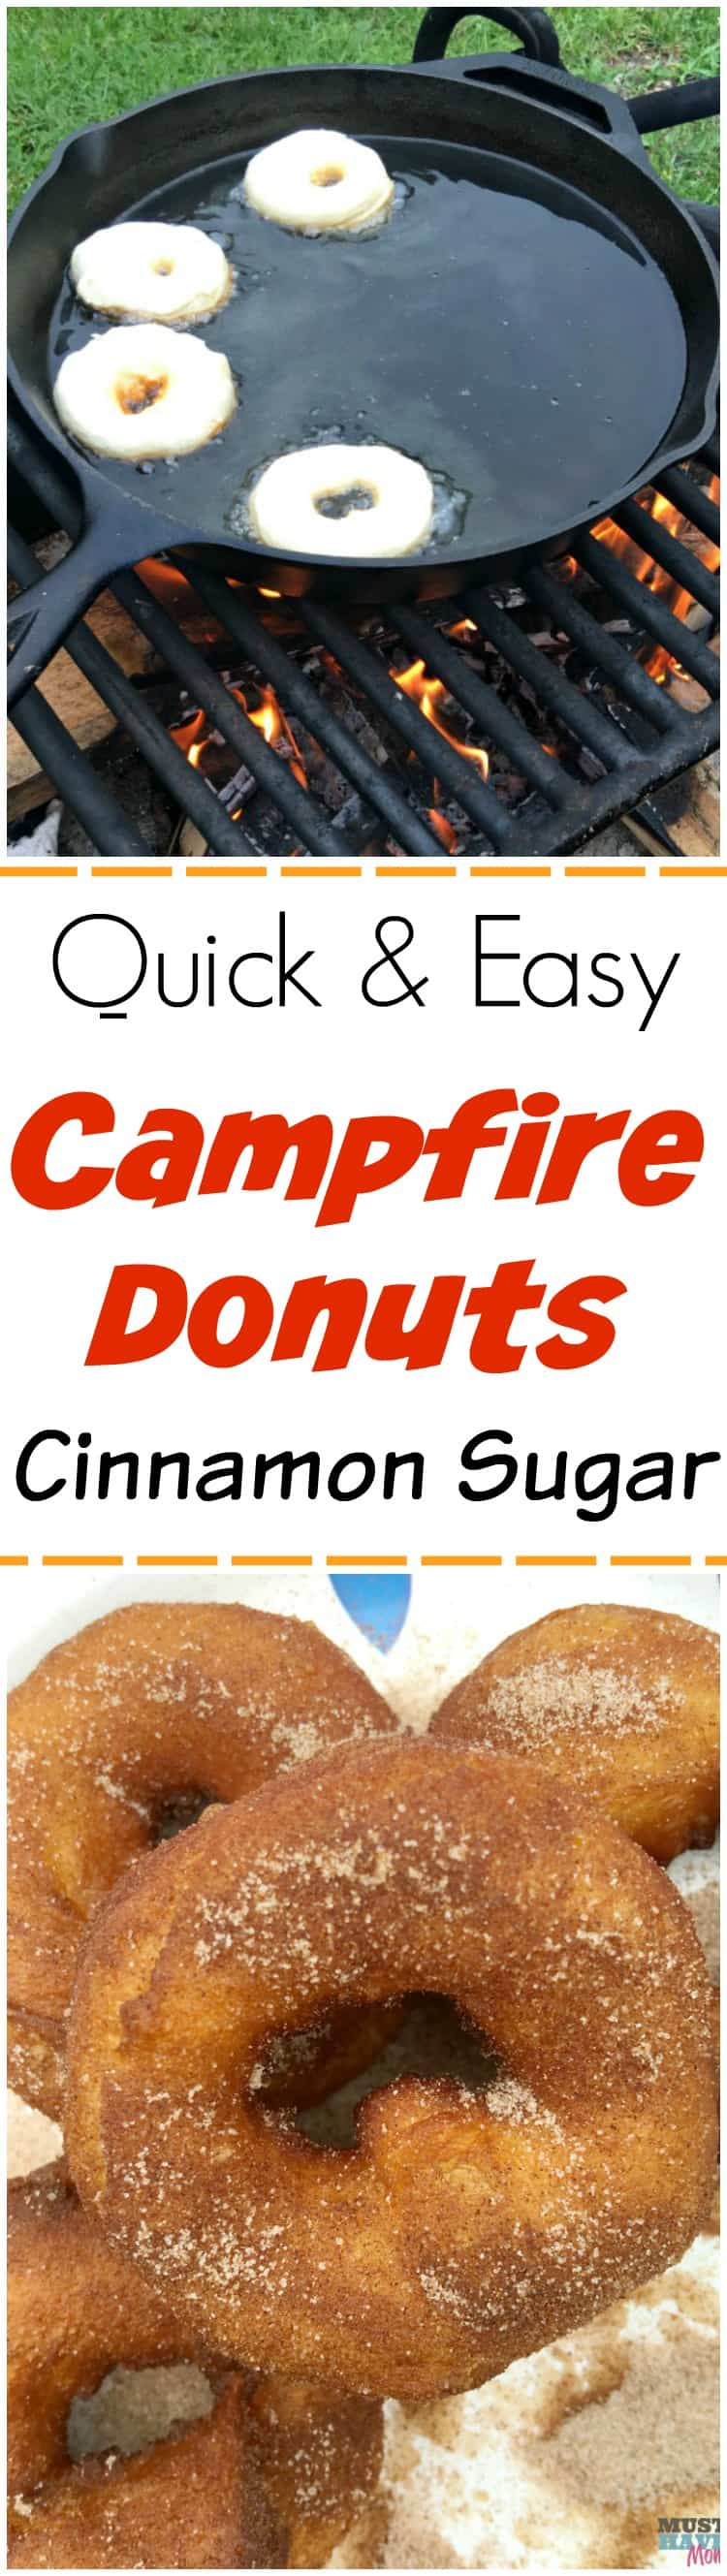 Easy Campfire Recipes These Donuts Are Our Kids Favorite Of All Camping